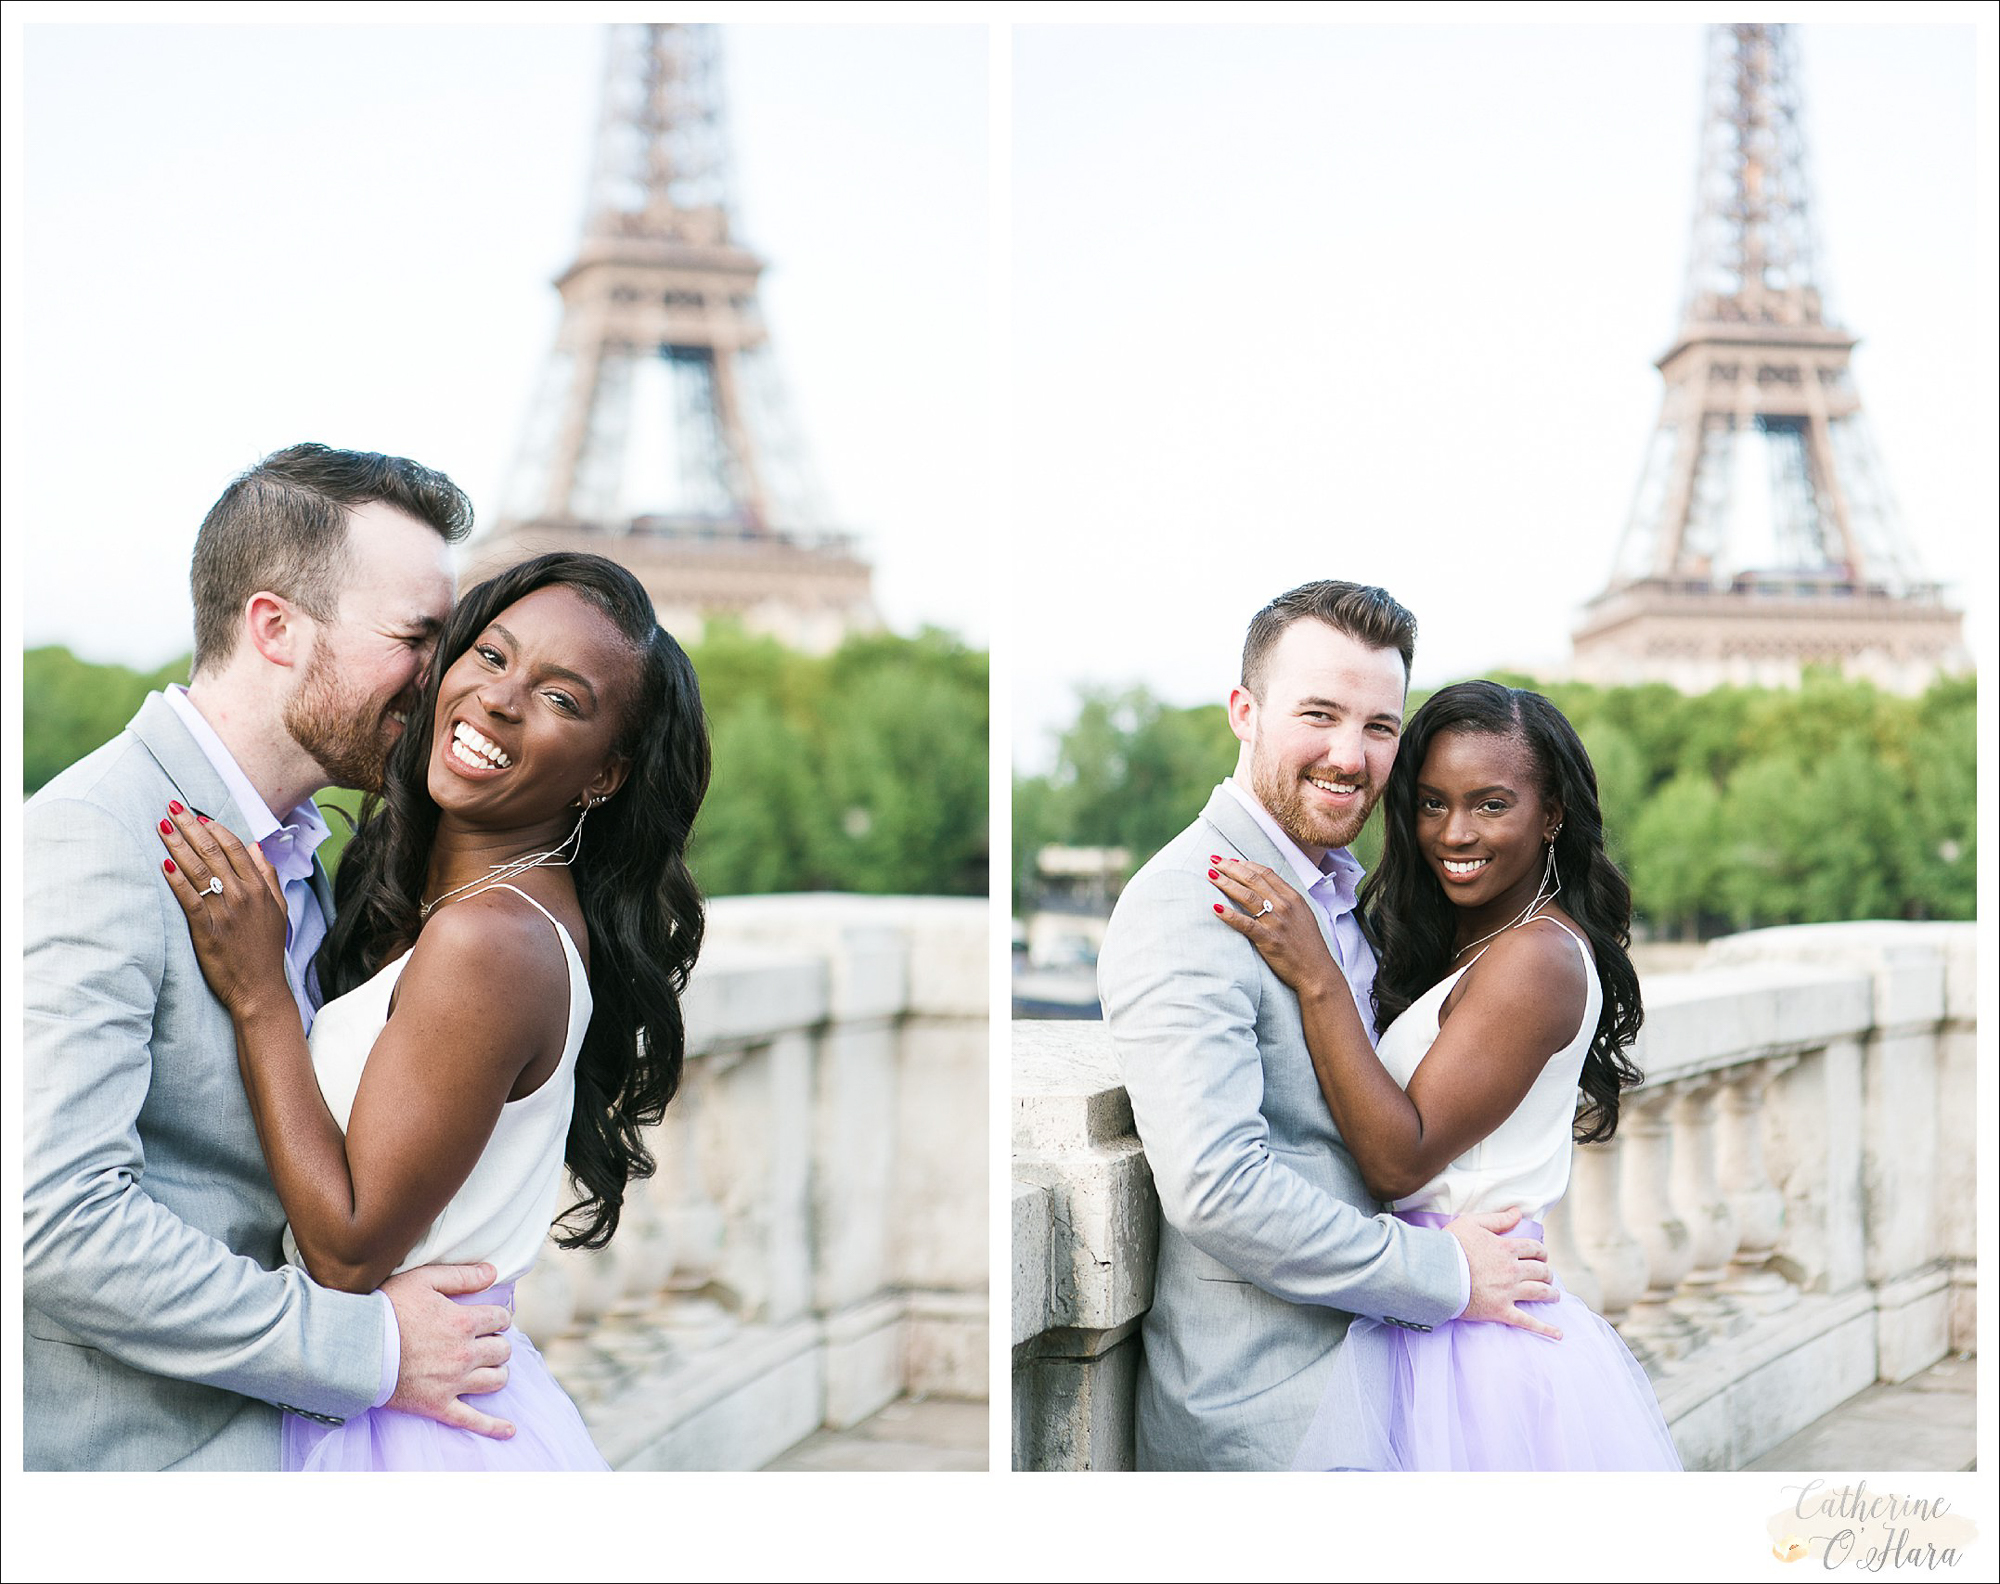 surprise proposal engagement photographer paris france-19.jpg